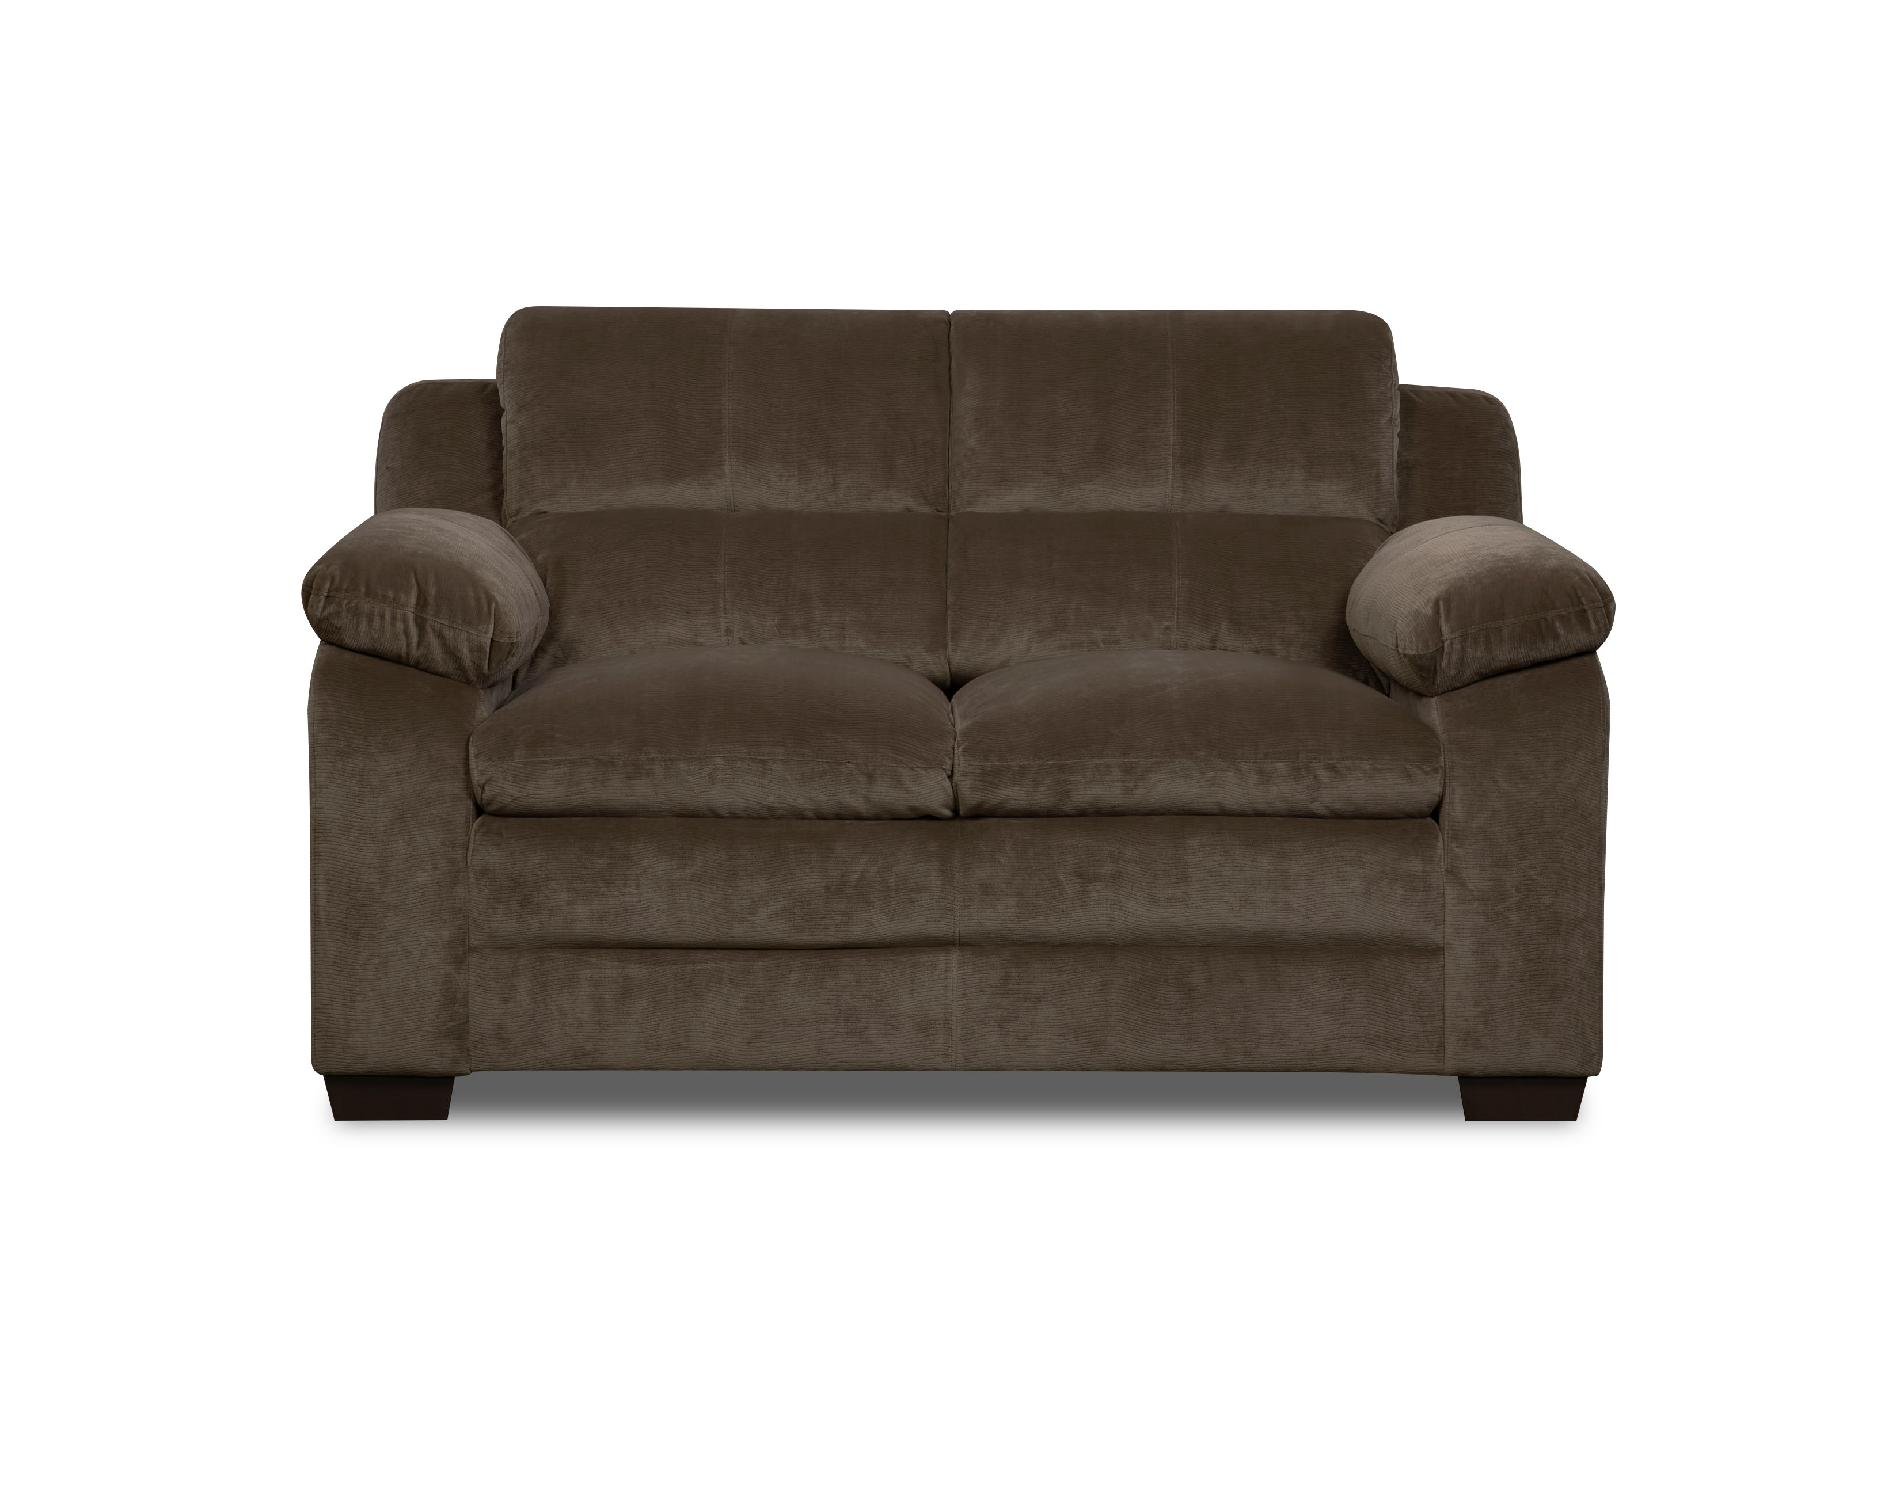 simmons blackjack cocoa reclining sofa and loveseat slipcovered sofas made in north carolina bixby ii chocolate